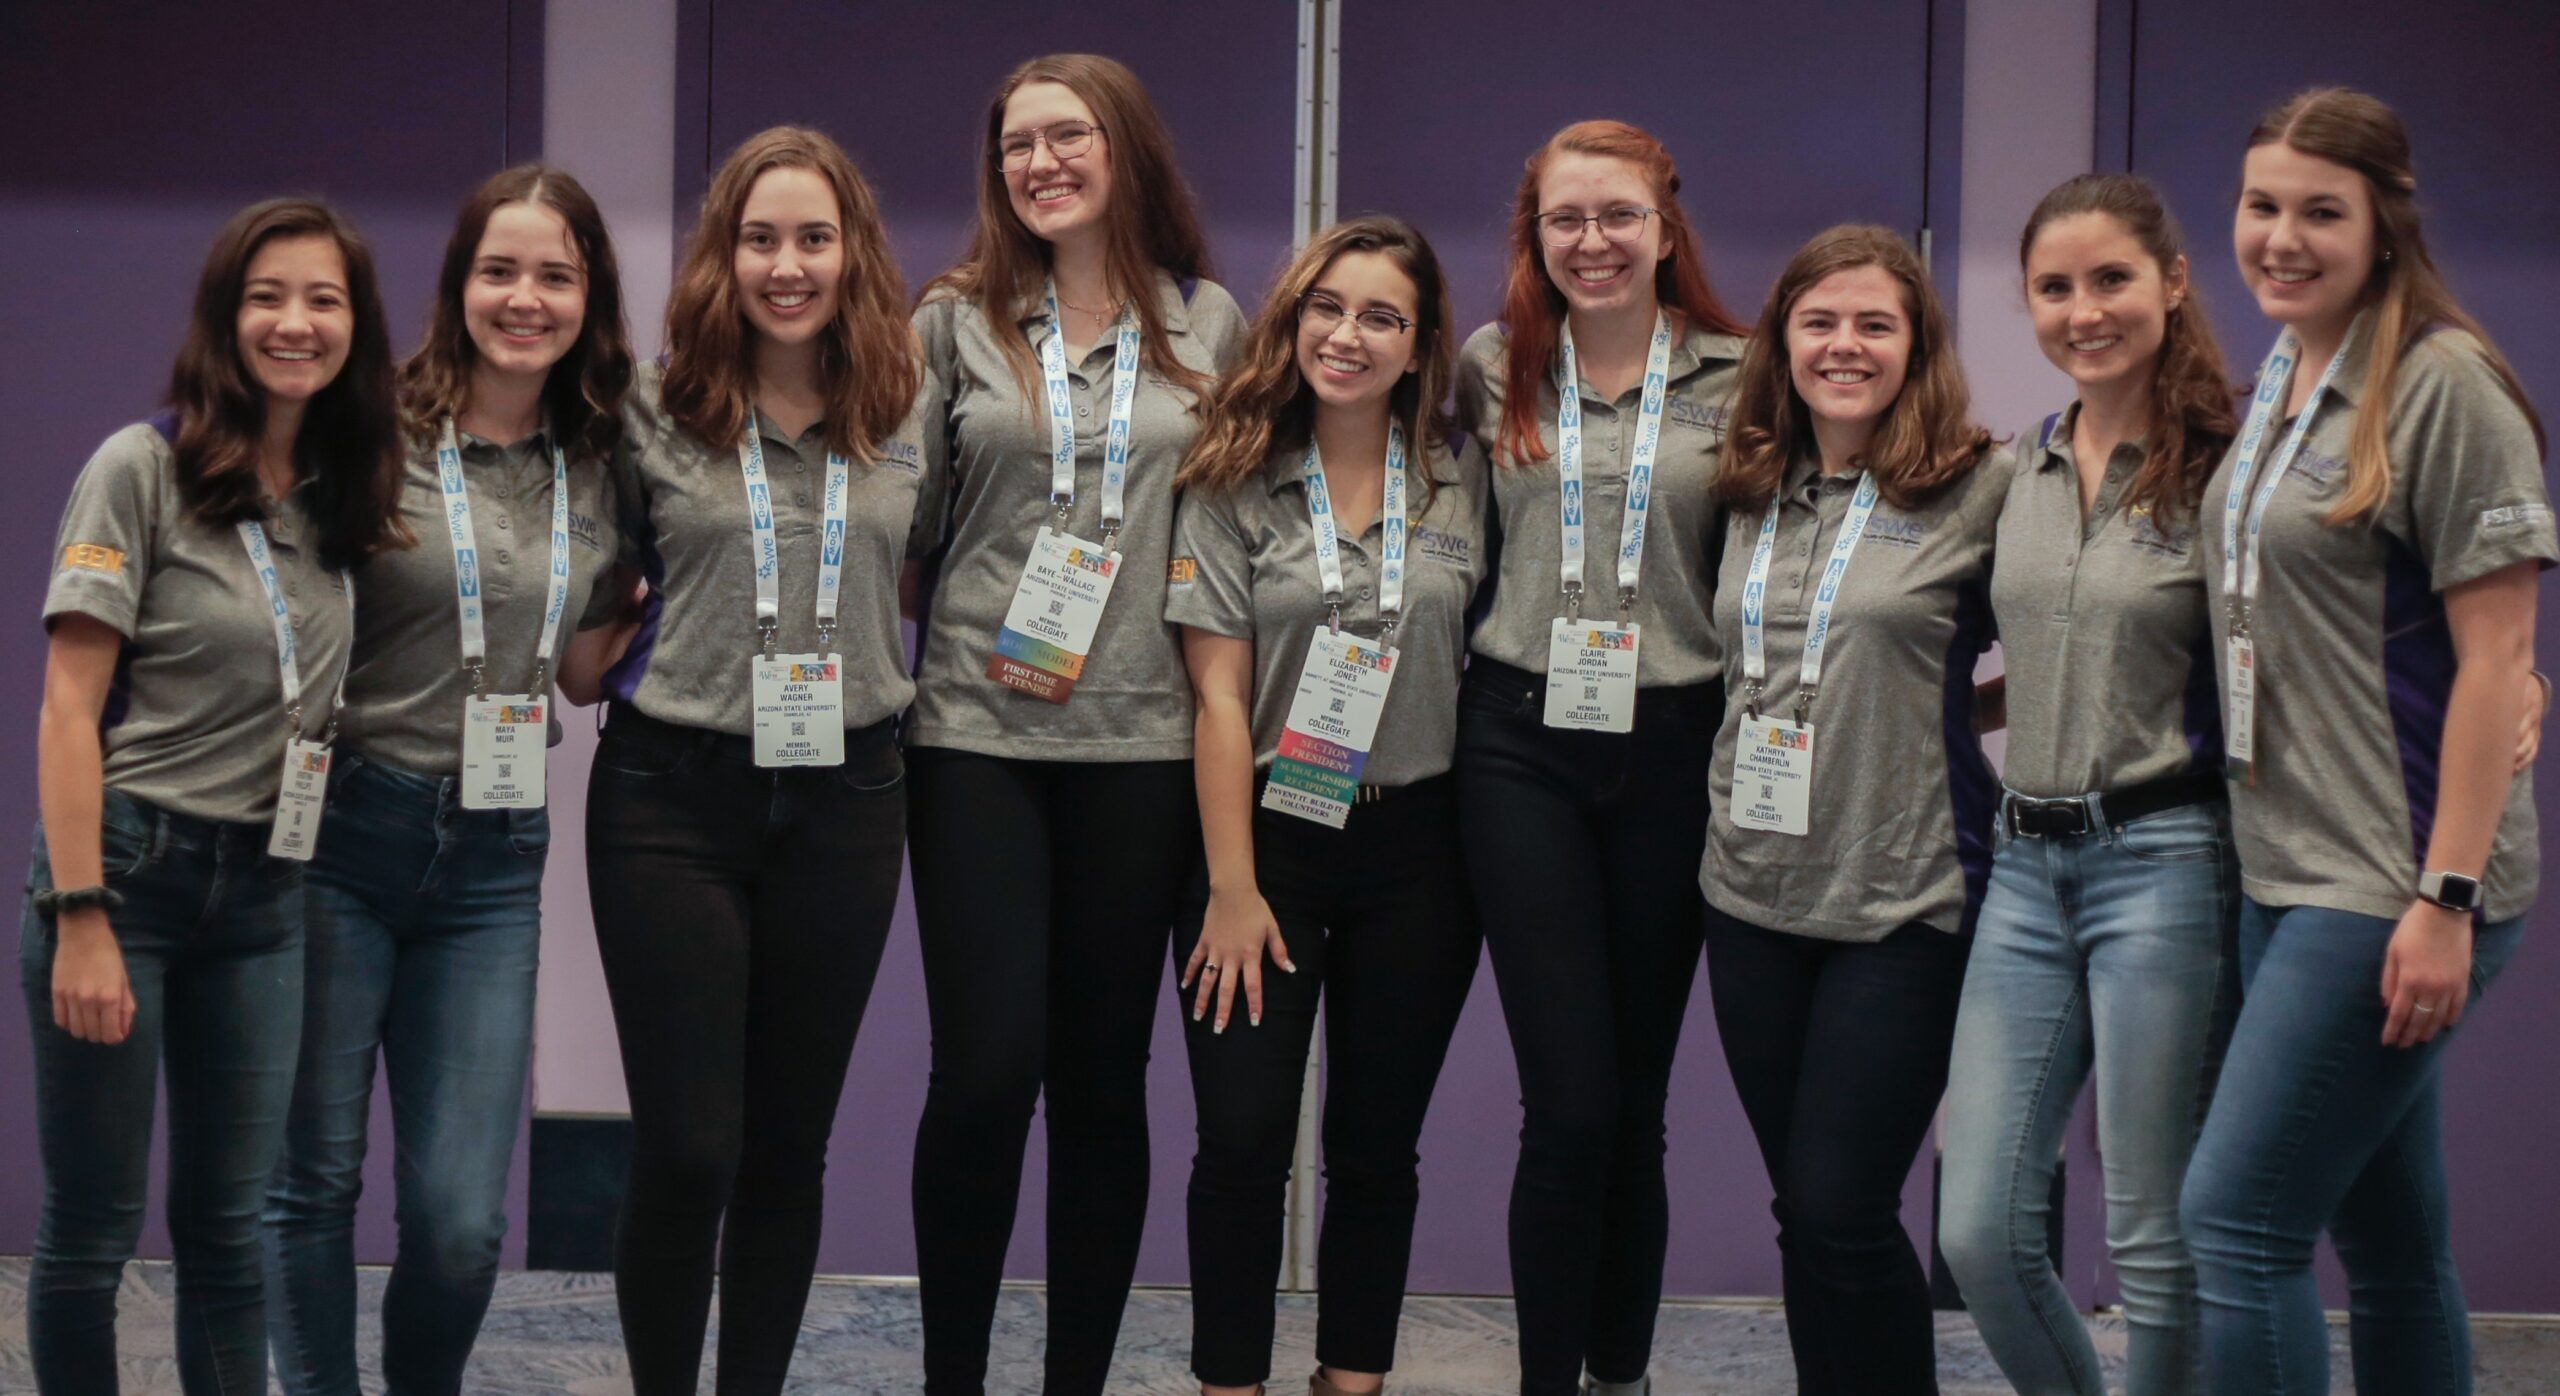 Elizabeth Jones (center) and members of the ASU SWE section leadership team the WE19 Society of Women Engineers conference.